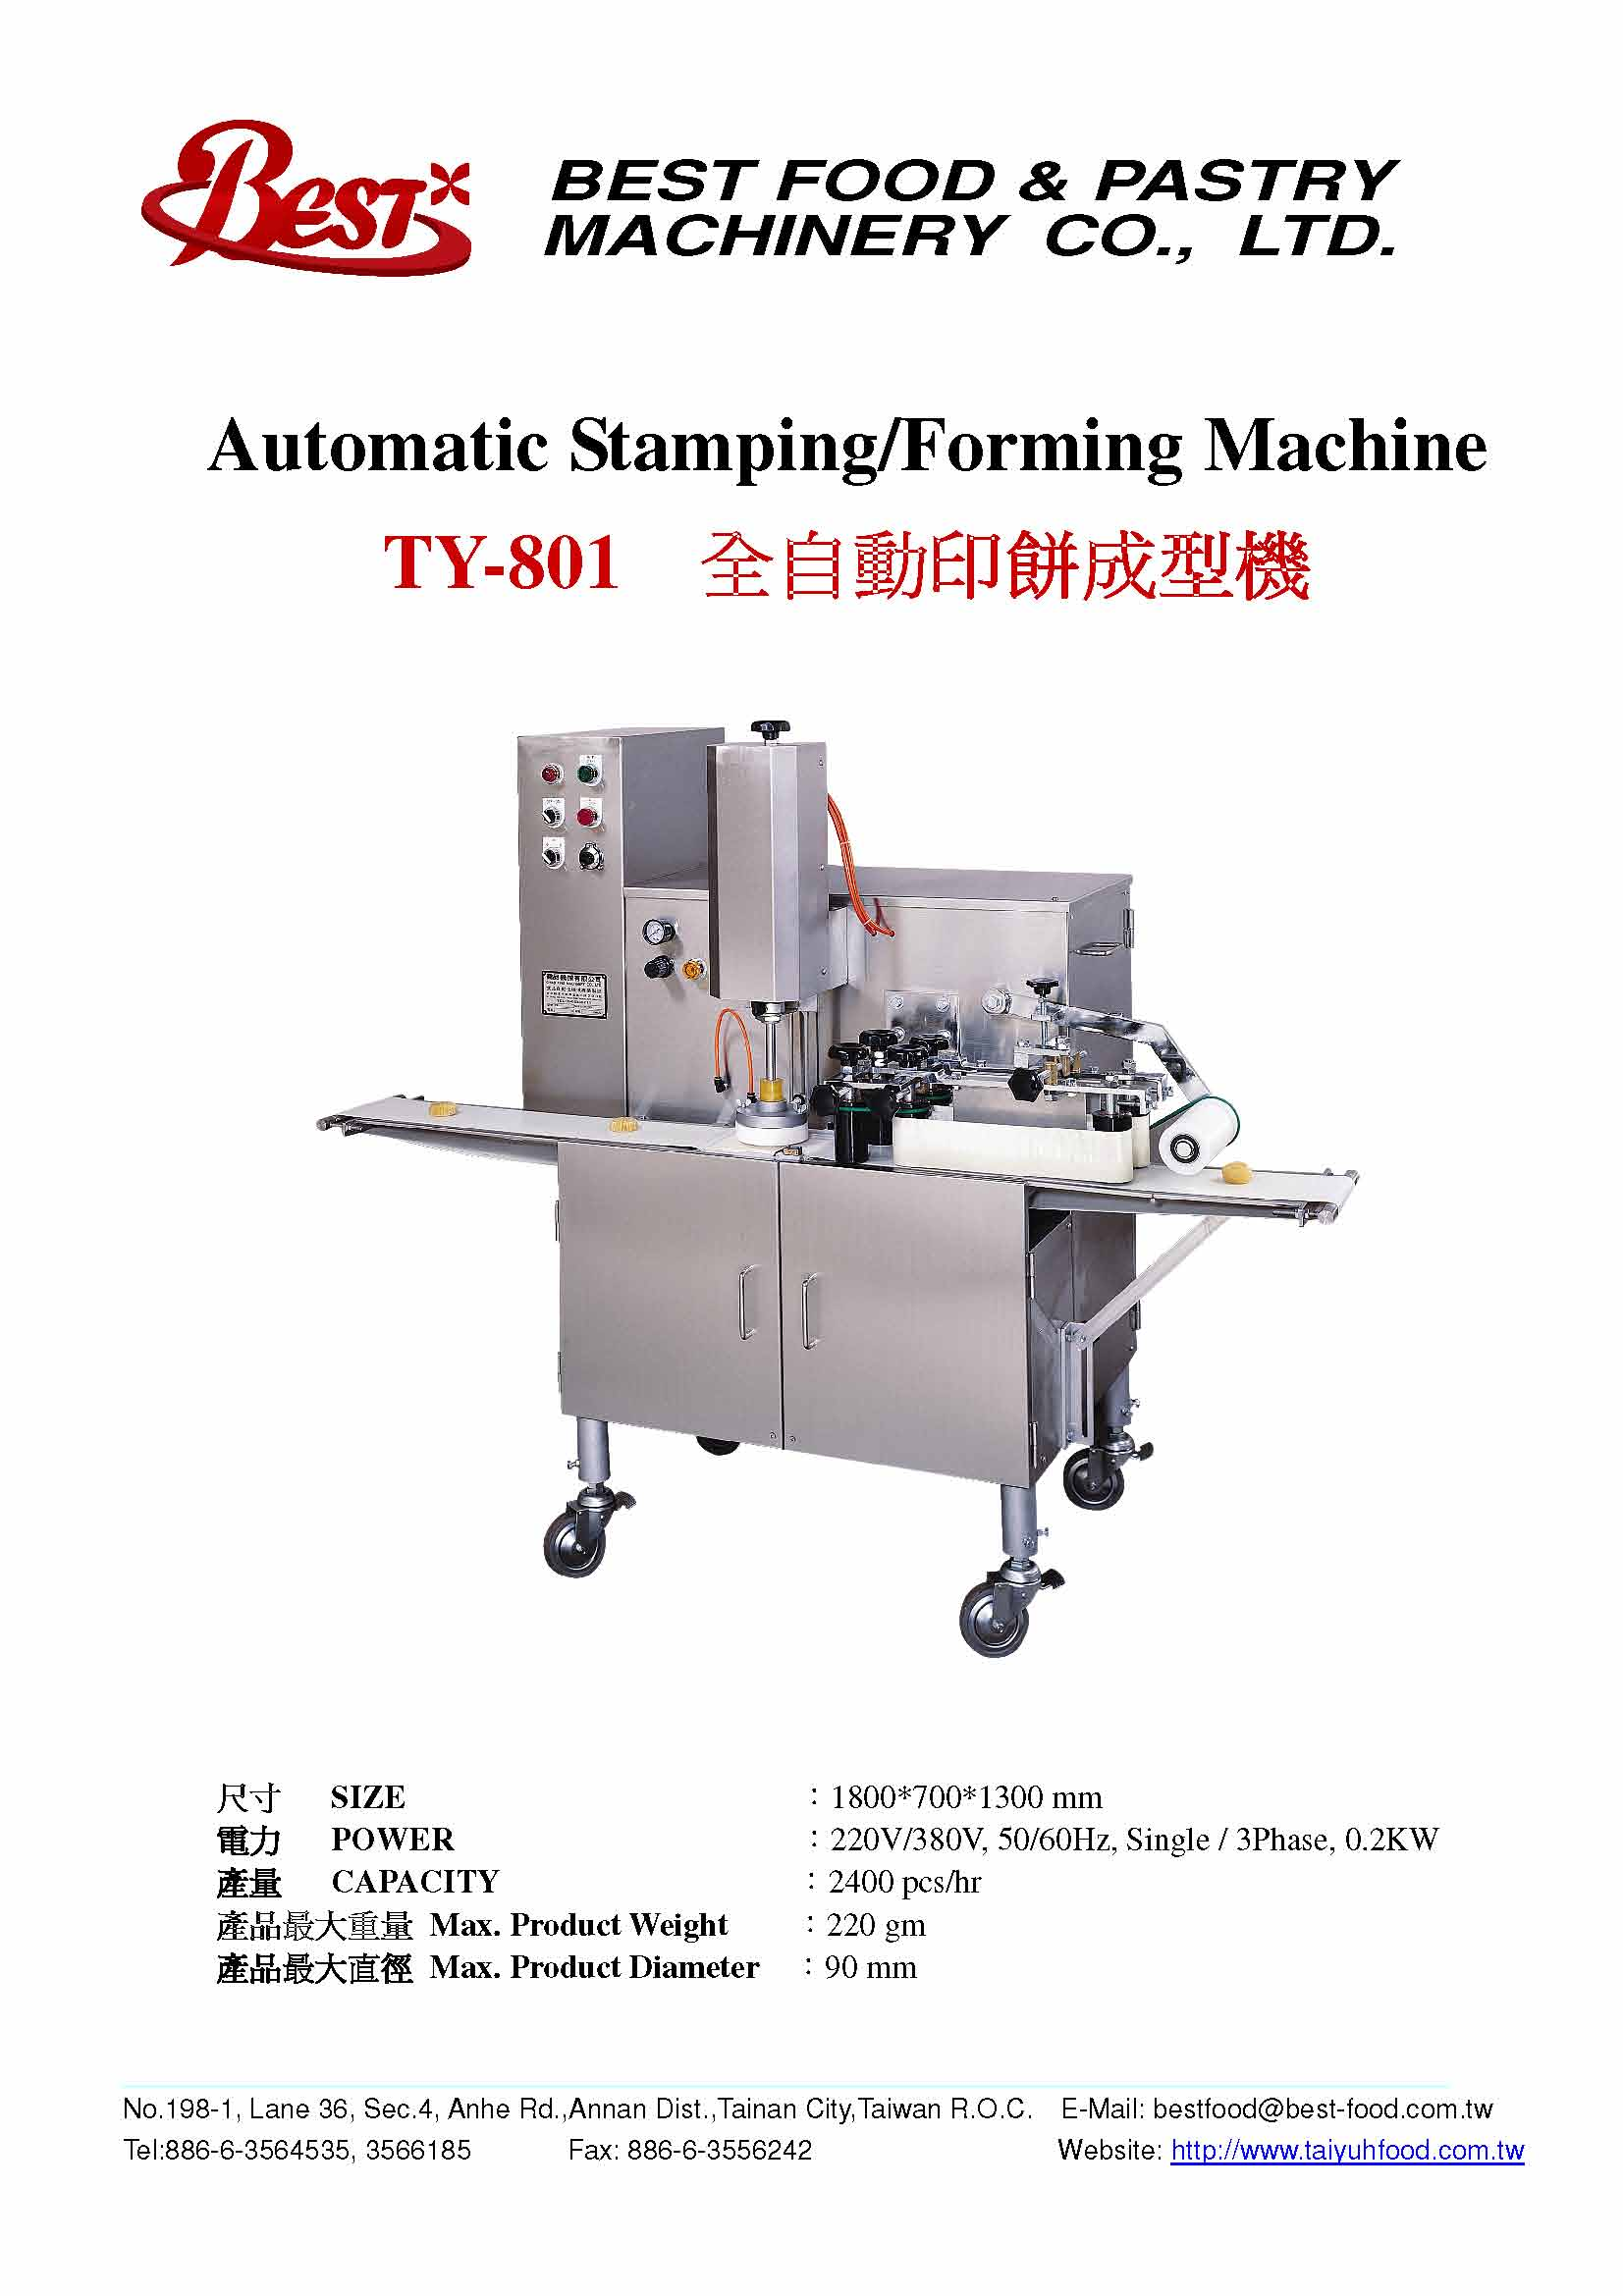 Automatic Stamping & Forming Machine (TY-801) - Tai Yuh Machine Enterprise Ltd.